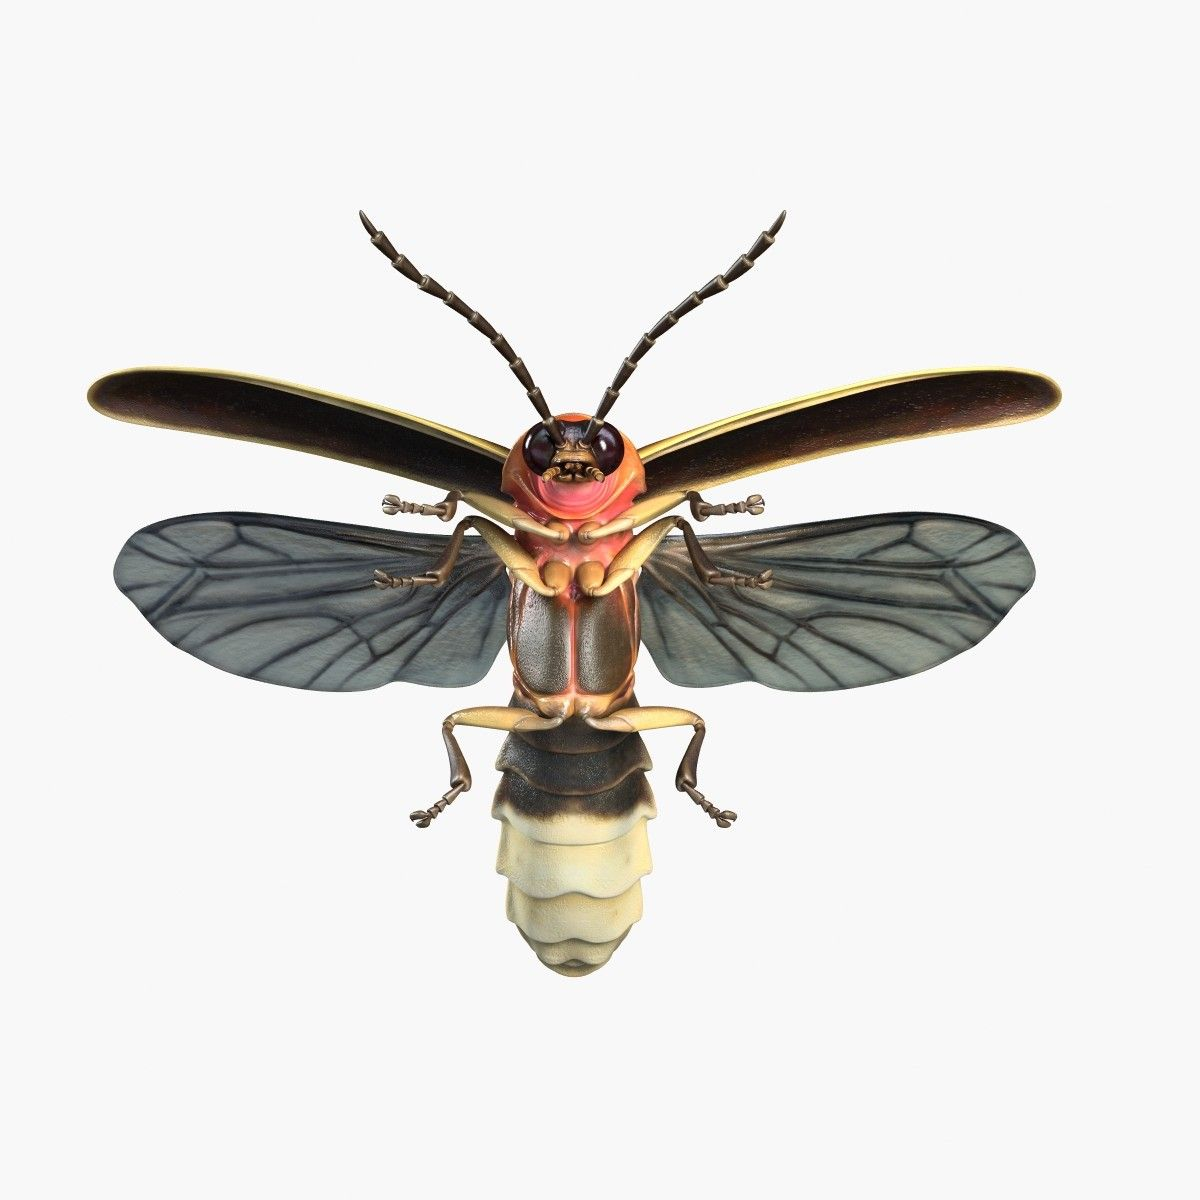 Images For > Firefly Insect Illustration | Firefly art ...